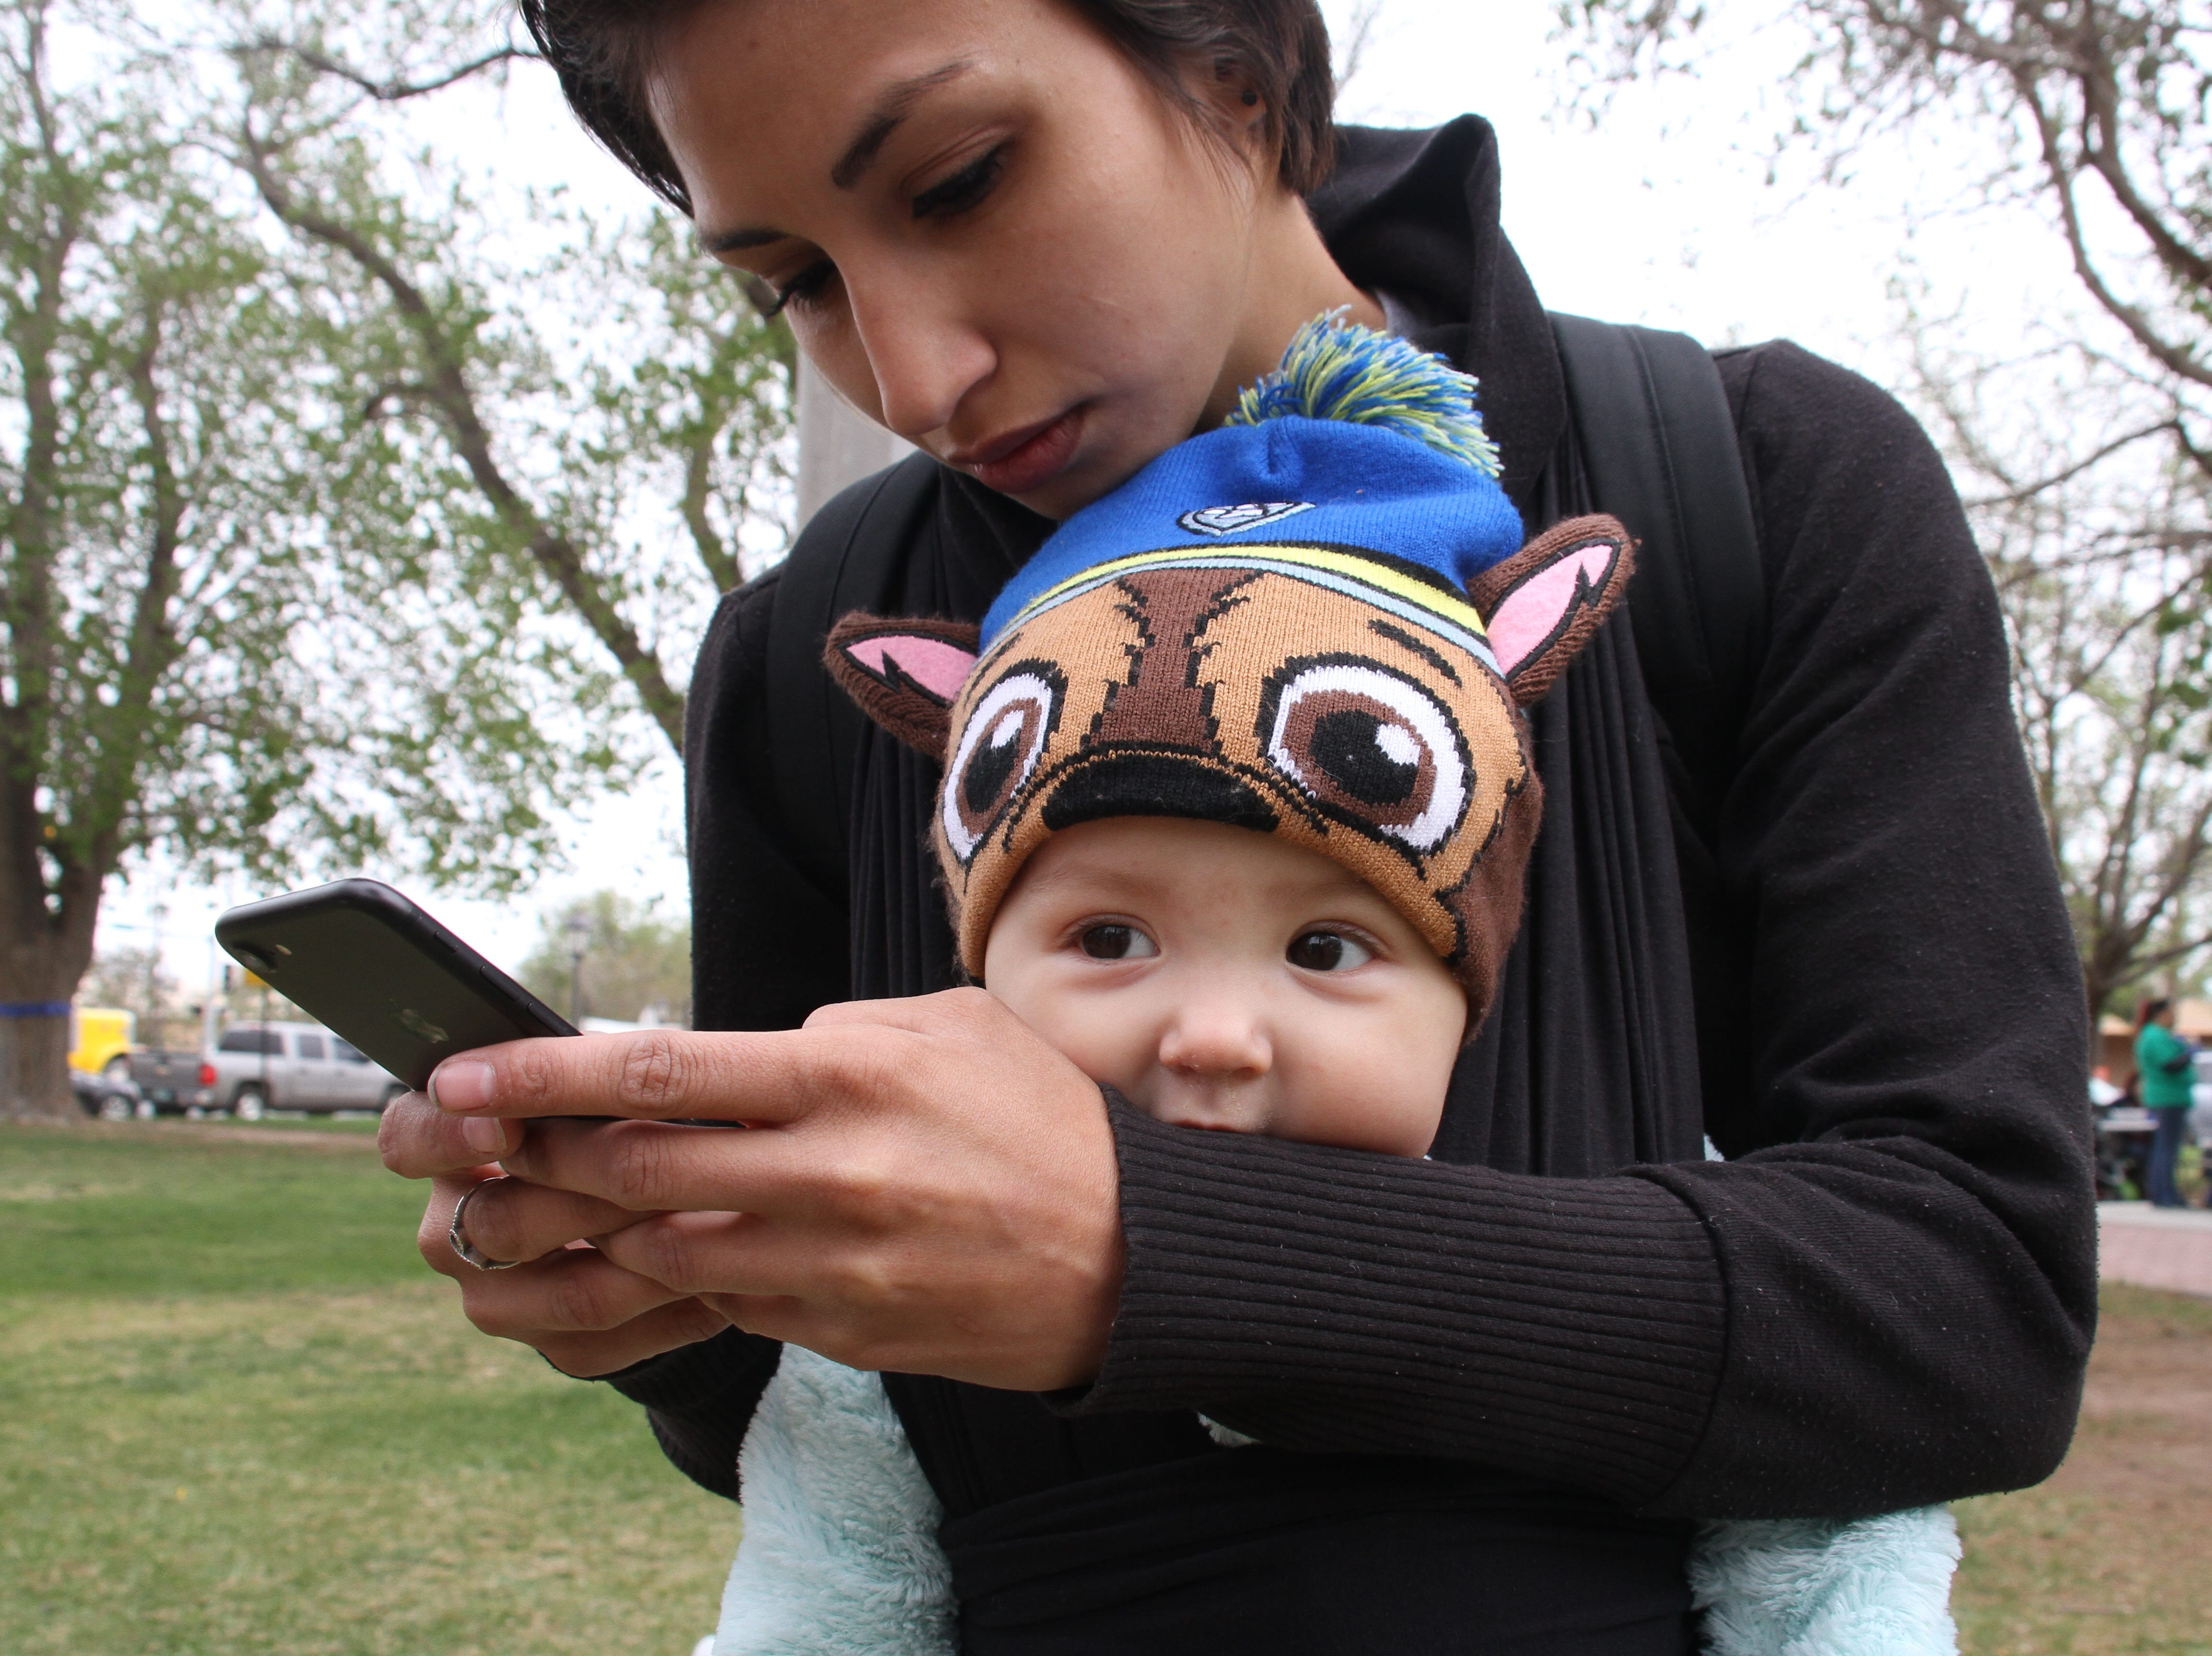 Ingrid Gonzalez on phone while 8-month-old Dzidziely Lucero sucks on her mother's sleeve.